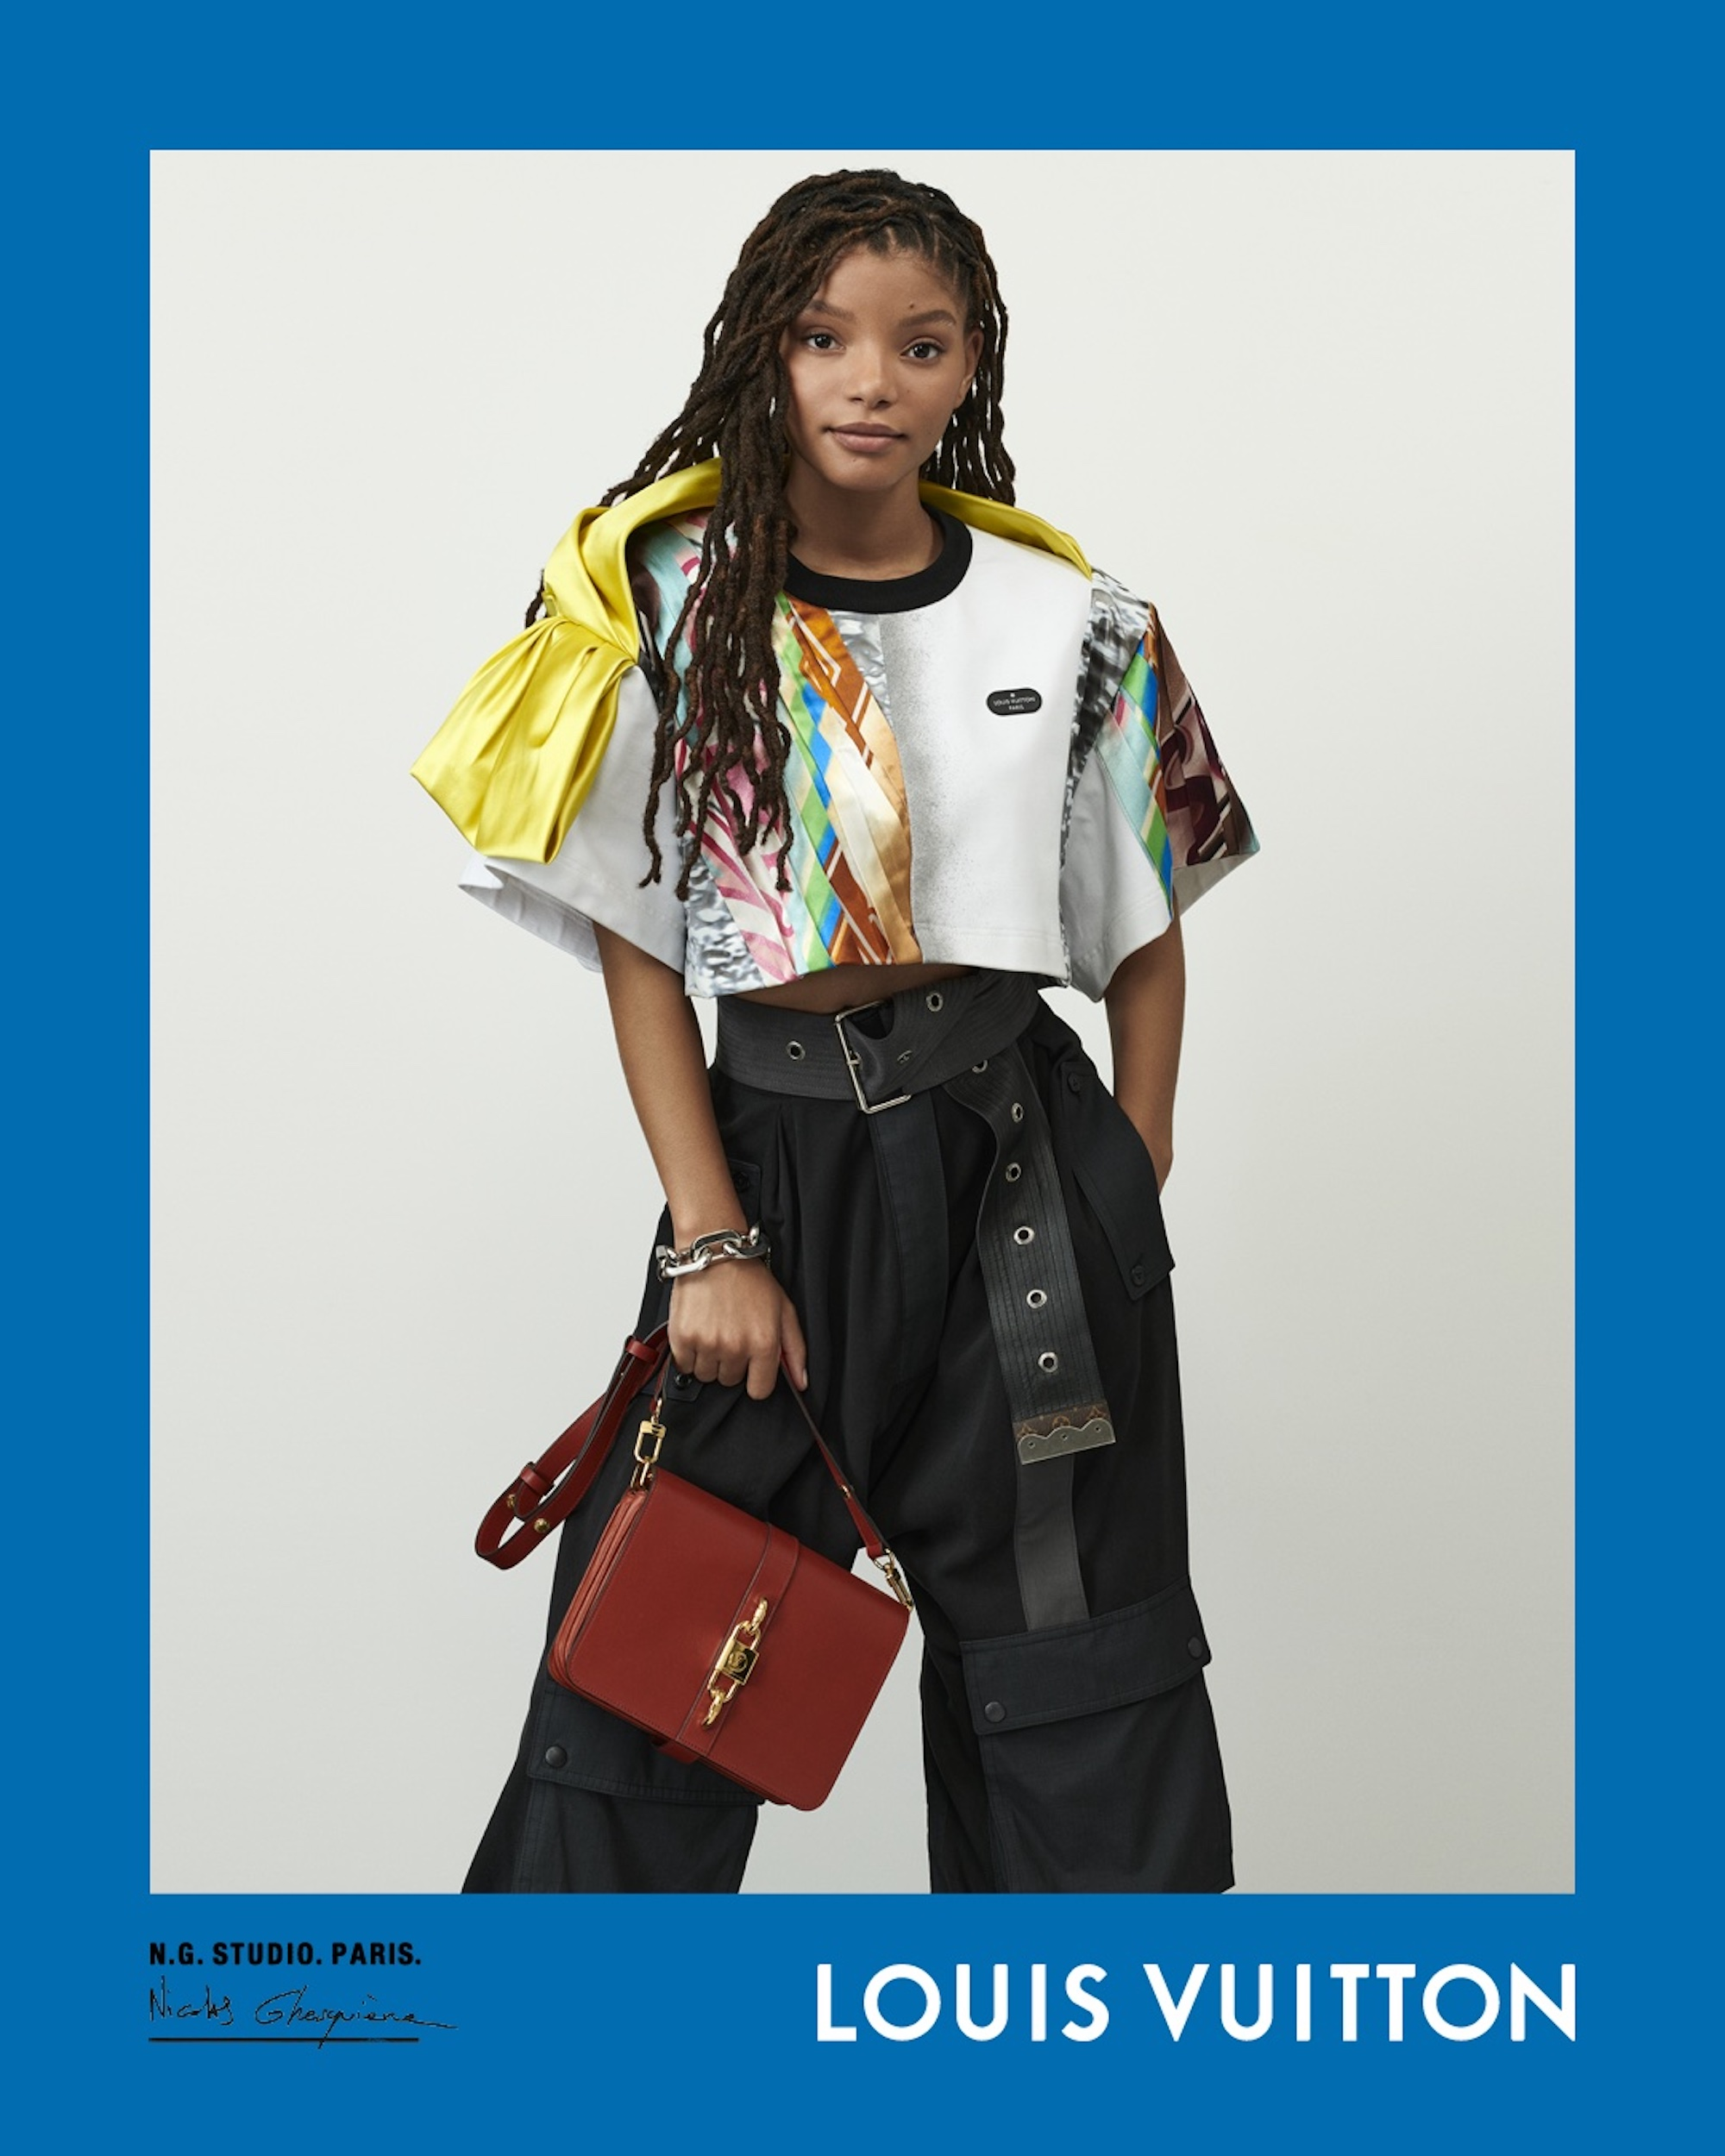 Louis Vuitton Spring Summer 2021 campaign, Nicolas Ghesquière, creative director, photographer, chloe bailey